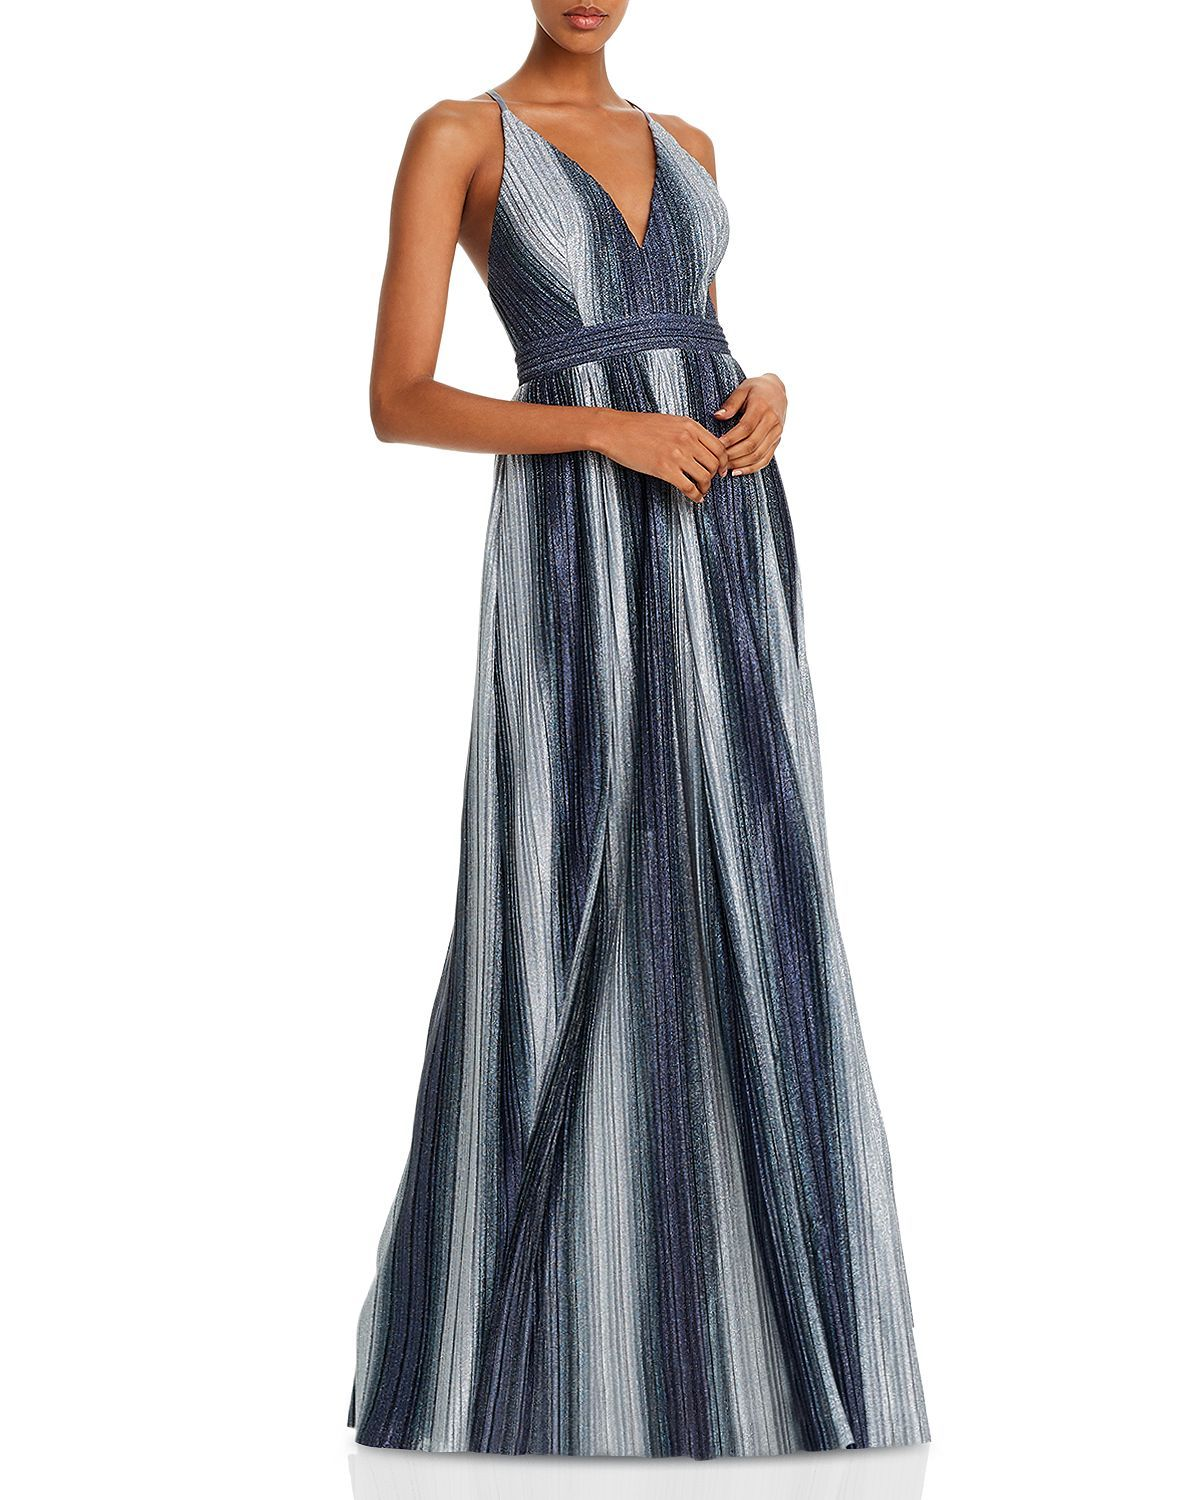 Aqua Striped Lurex Gown 100 Exclusive Women Bloomingdale S Neon Prom Dresses Bloomingdale Dresses Sparkly Prom Dresses [ 1500 x 1200 Pixel ]